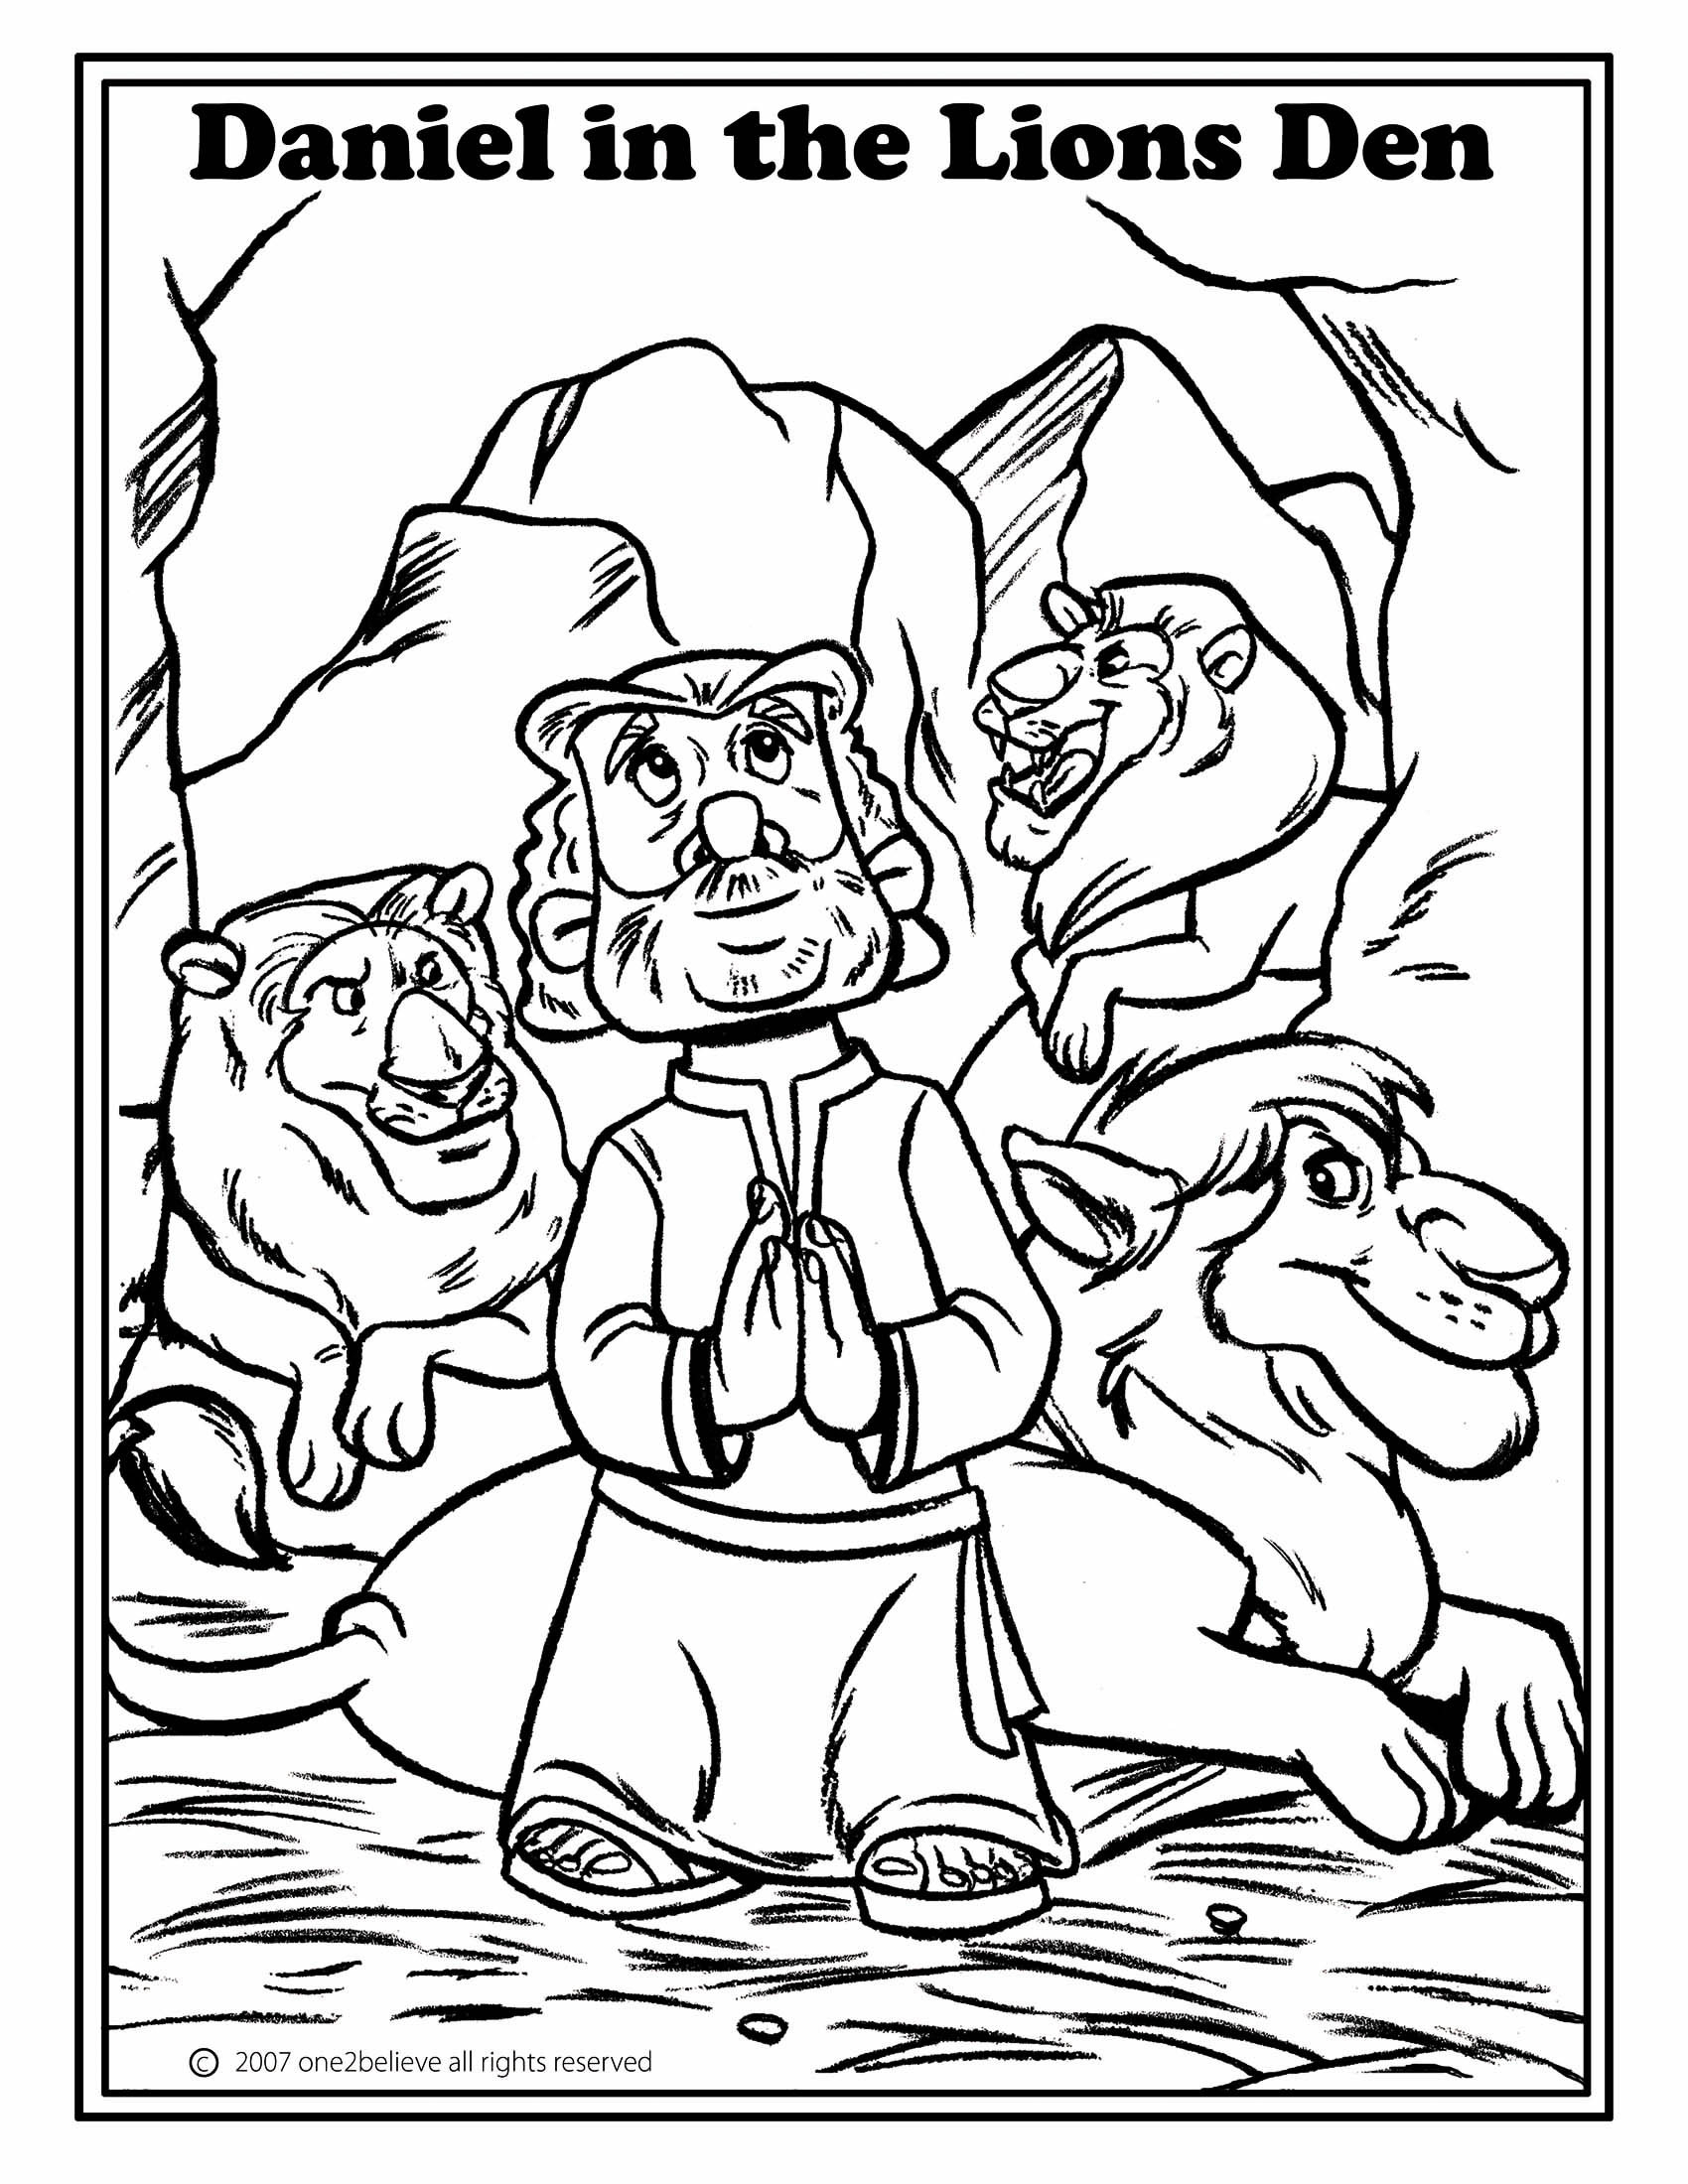 Coloring pages for bible stories coloring page for toddlers bible story 12j